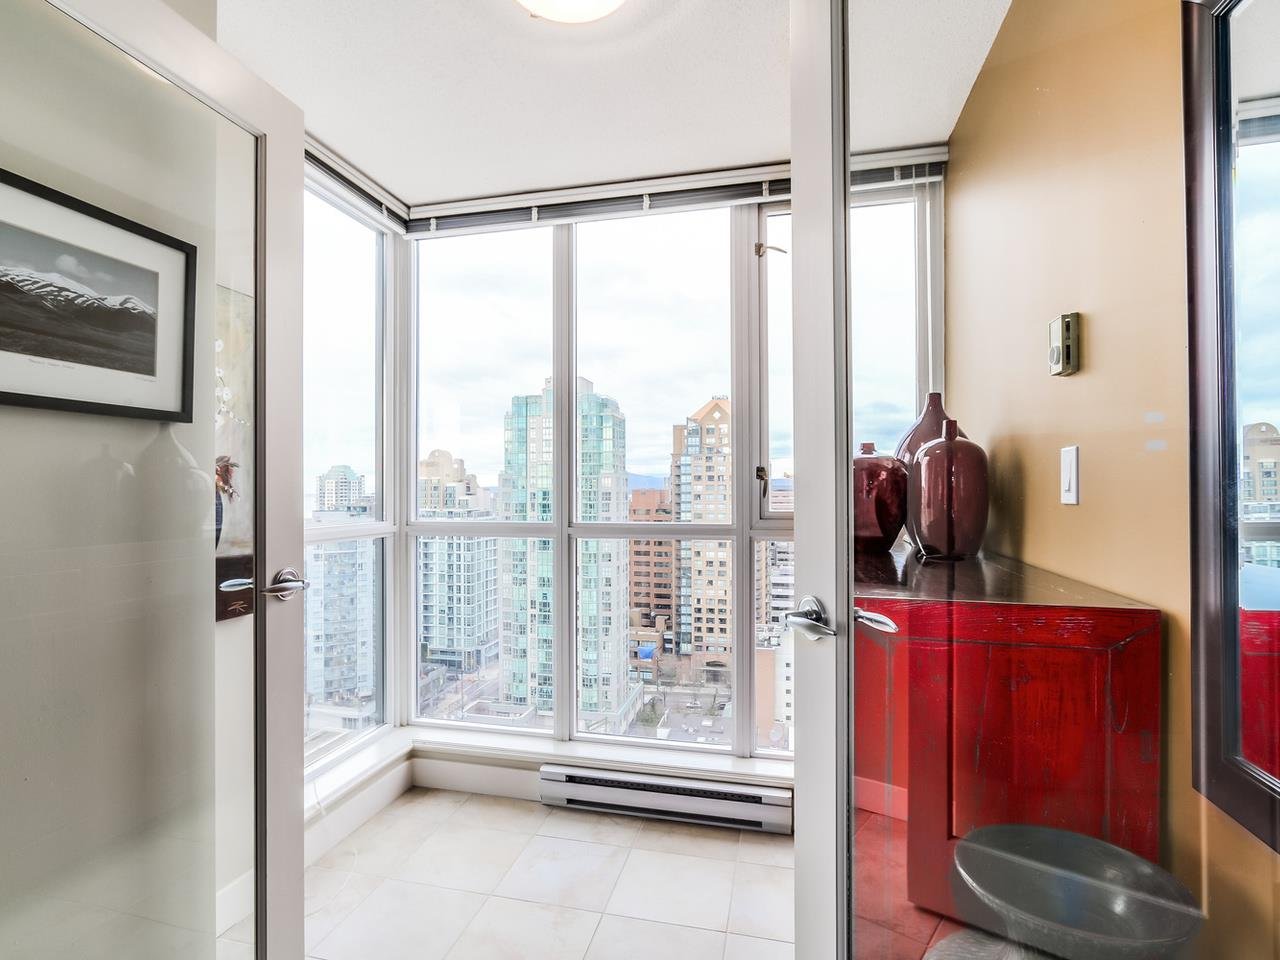 Photo 5: 2308 1155 SEYMOUR STREET in Vancouver: Downtown VW Condo for sale (Vancouver West)  : MLS® # R2026499